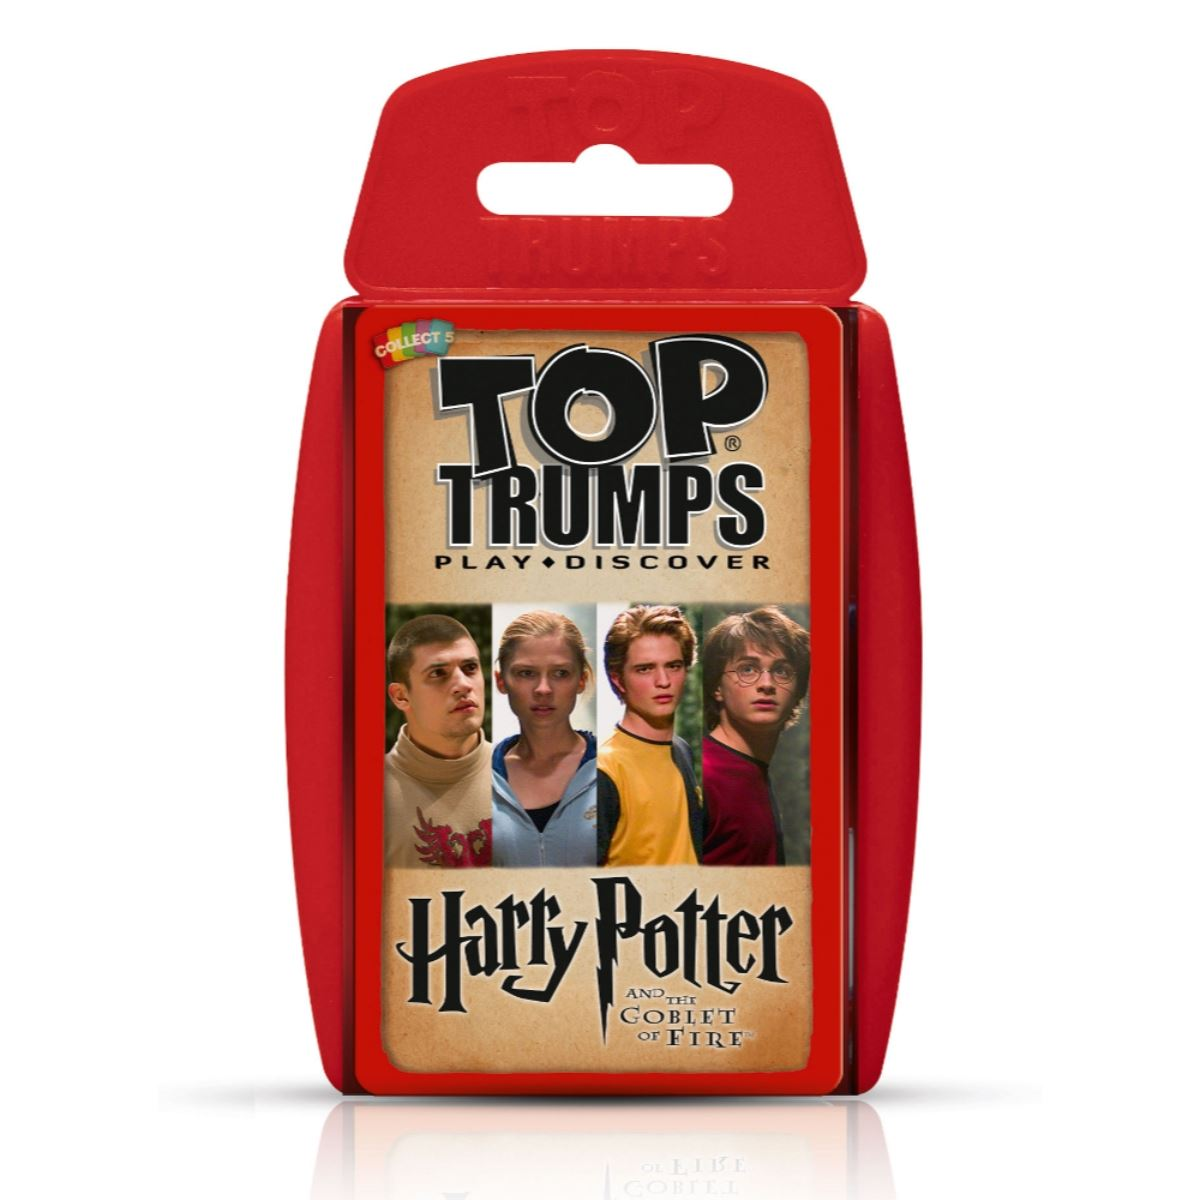 Harry Potter and the Goblet of Fire -Top Trumps Game, front of box